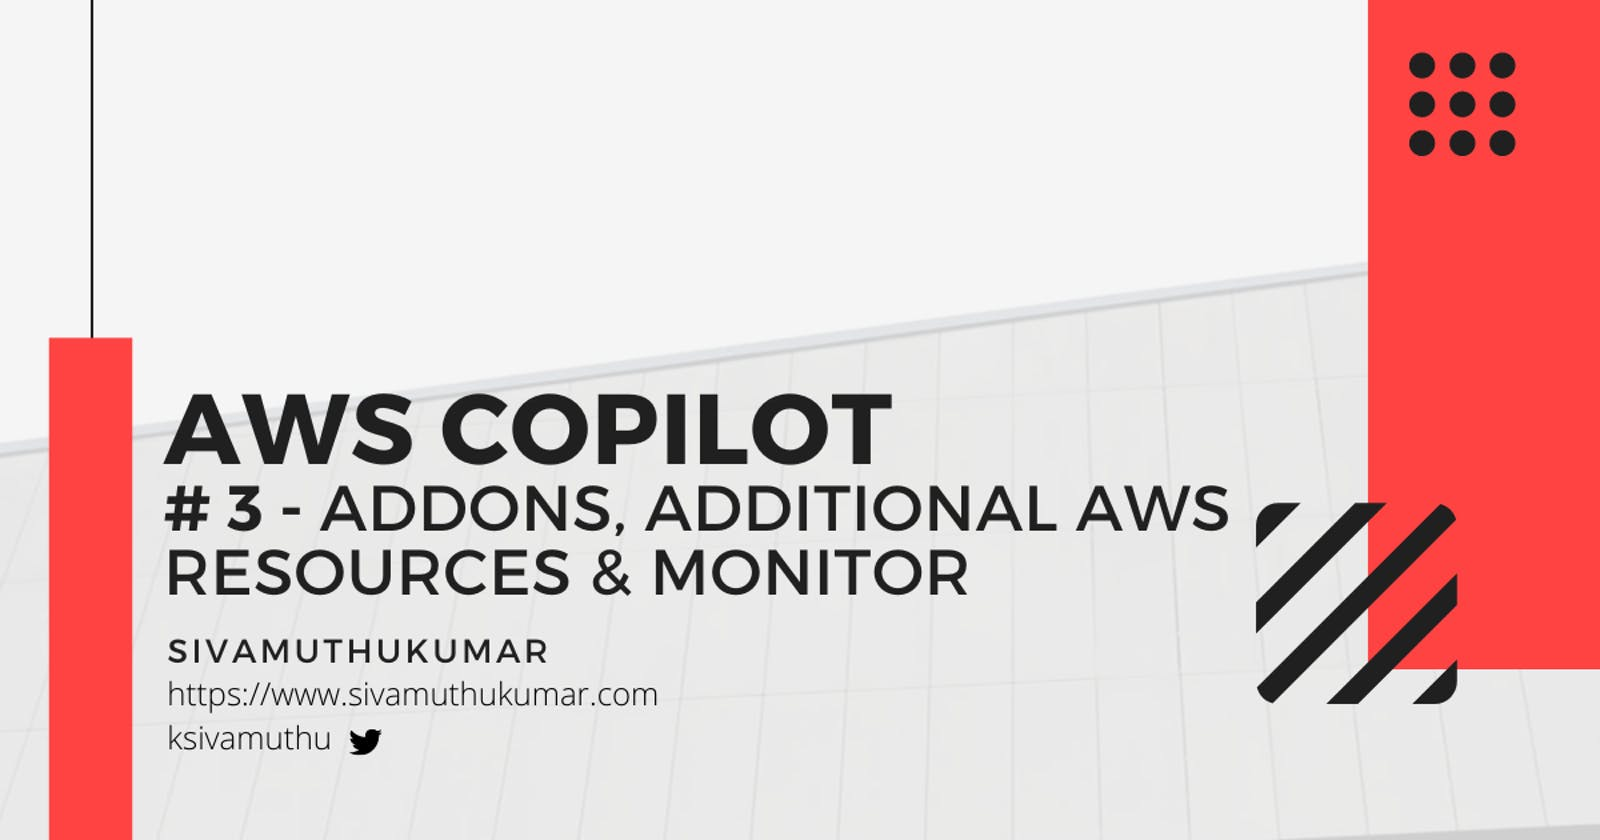 AWS Copilot - Addons, Additional Resources & Monitor